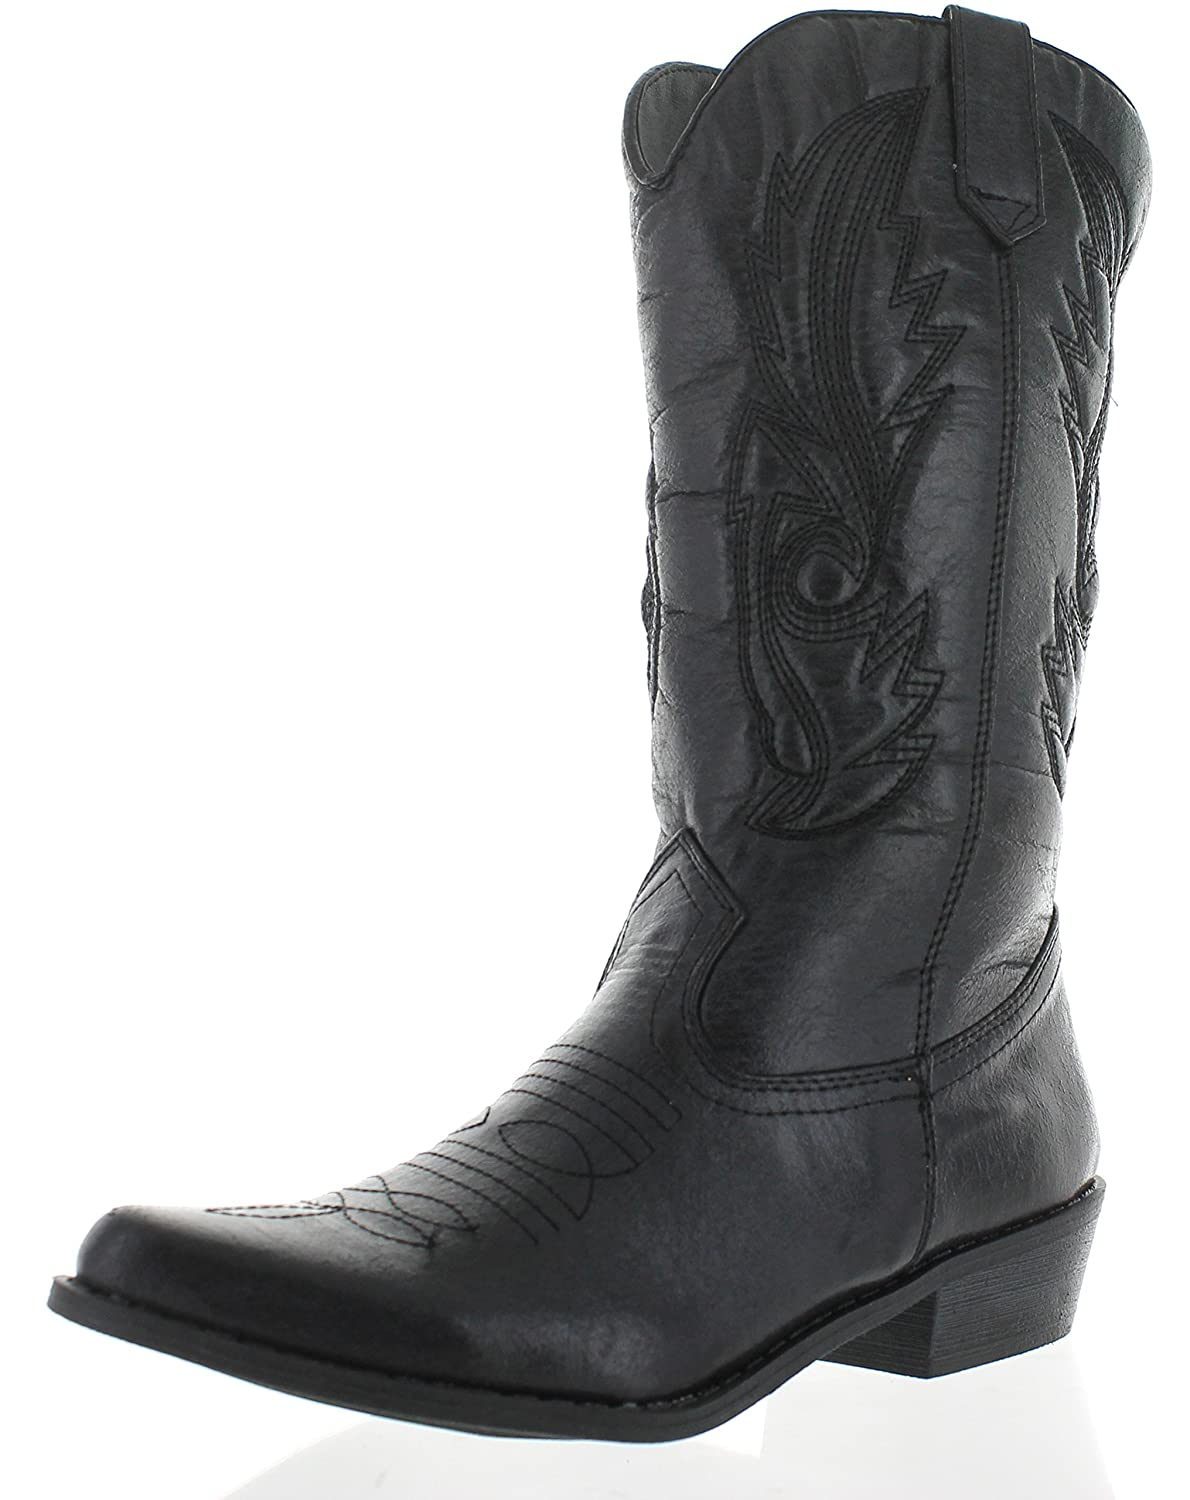 Coconuts by Matisse Women's Gaucho Boot B01NAPVC6Z 6.5 B(M) US|Black